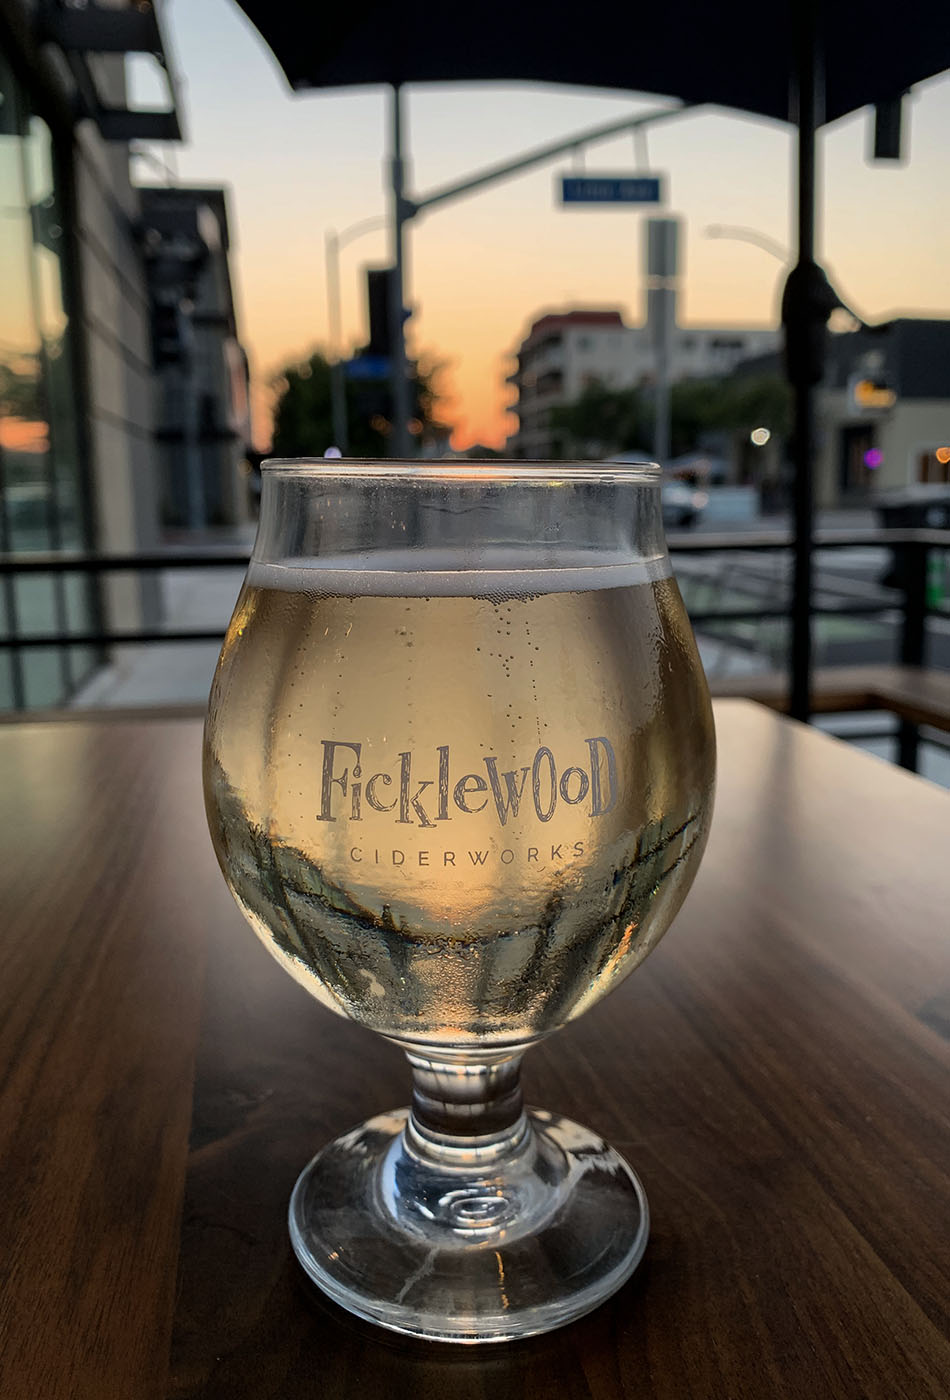 A clear cider from Ficklewood